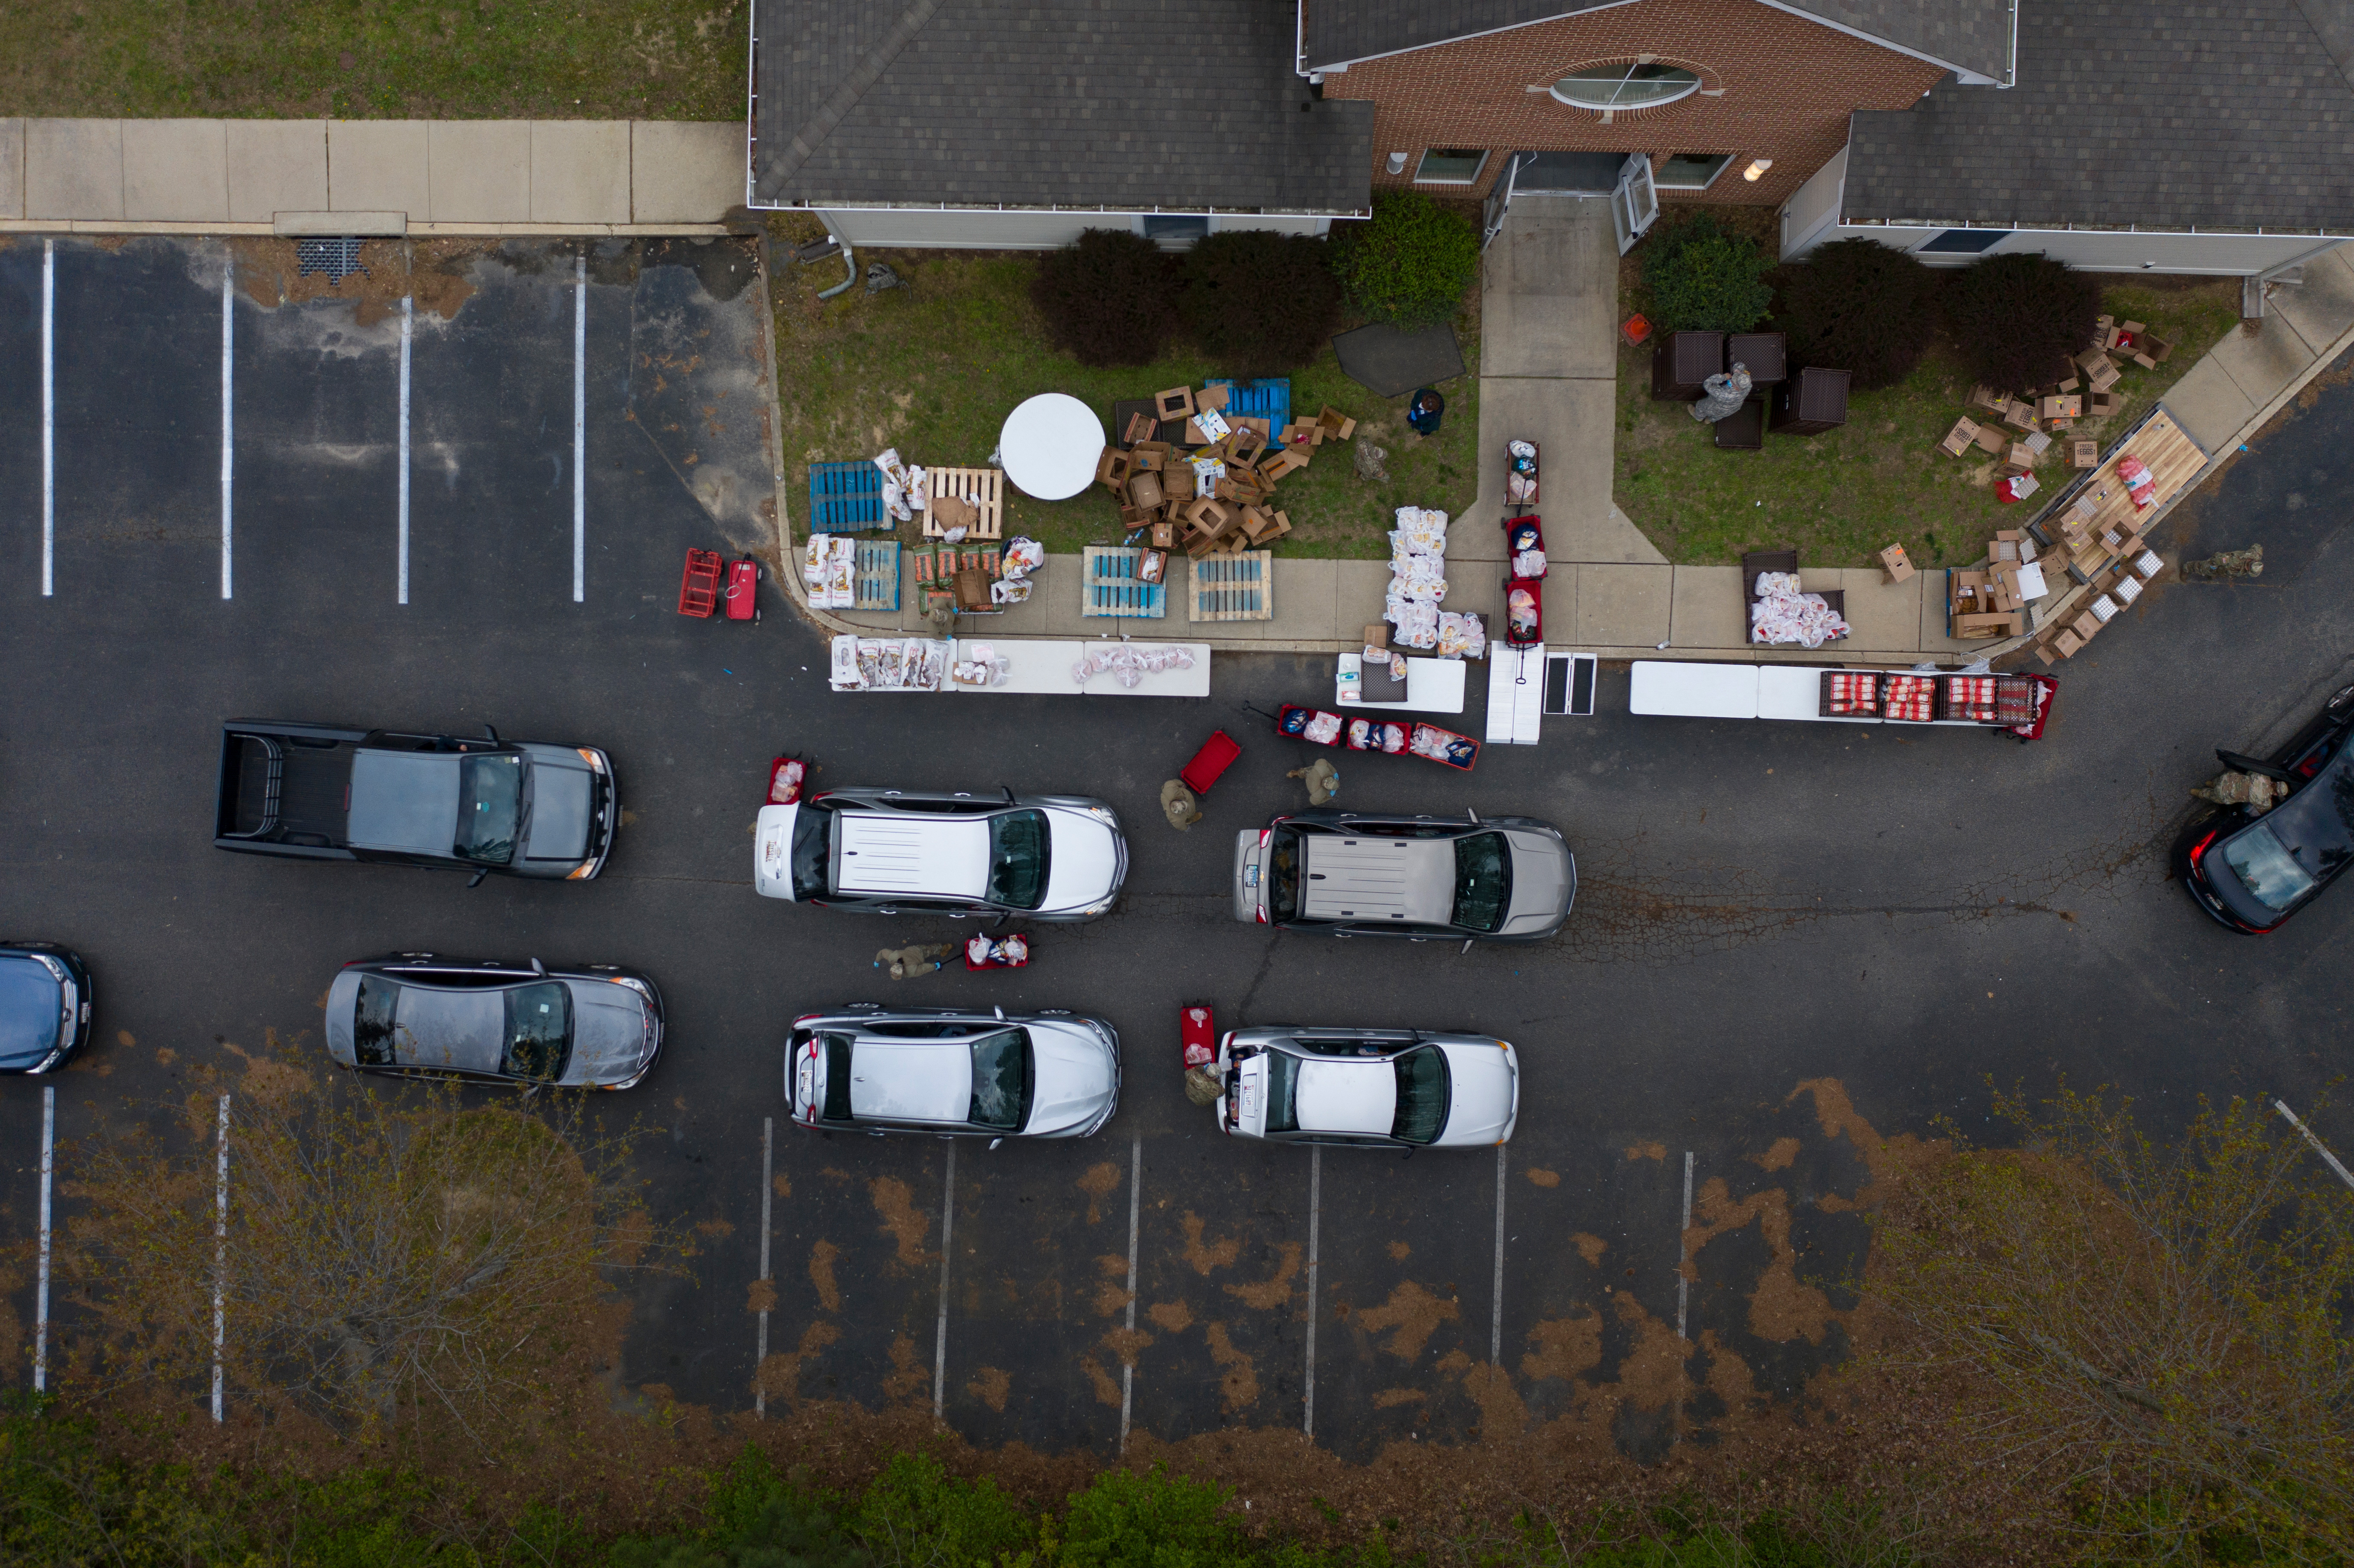 An aerial view of a food distribution site during the stay-at-home order in Centreville, Md., on April 17.